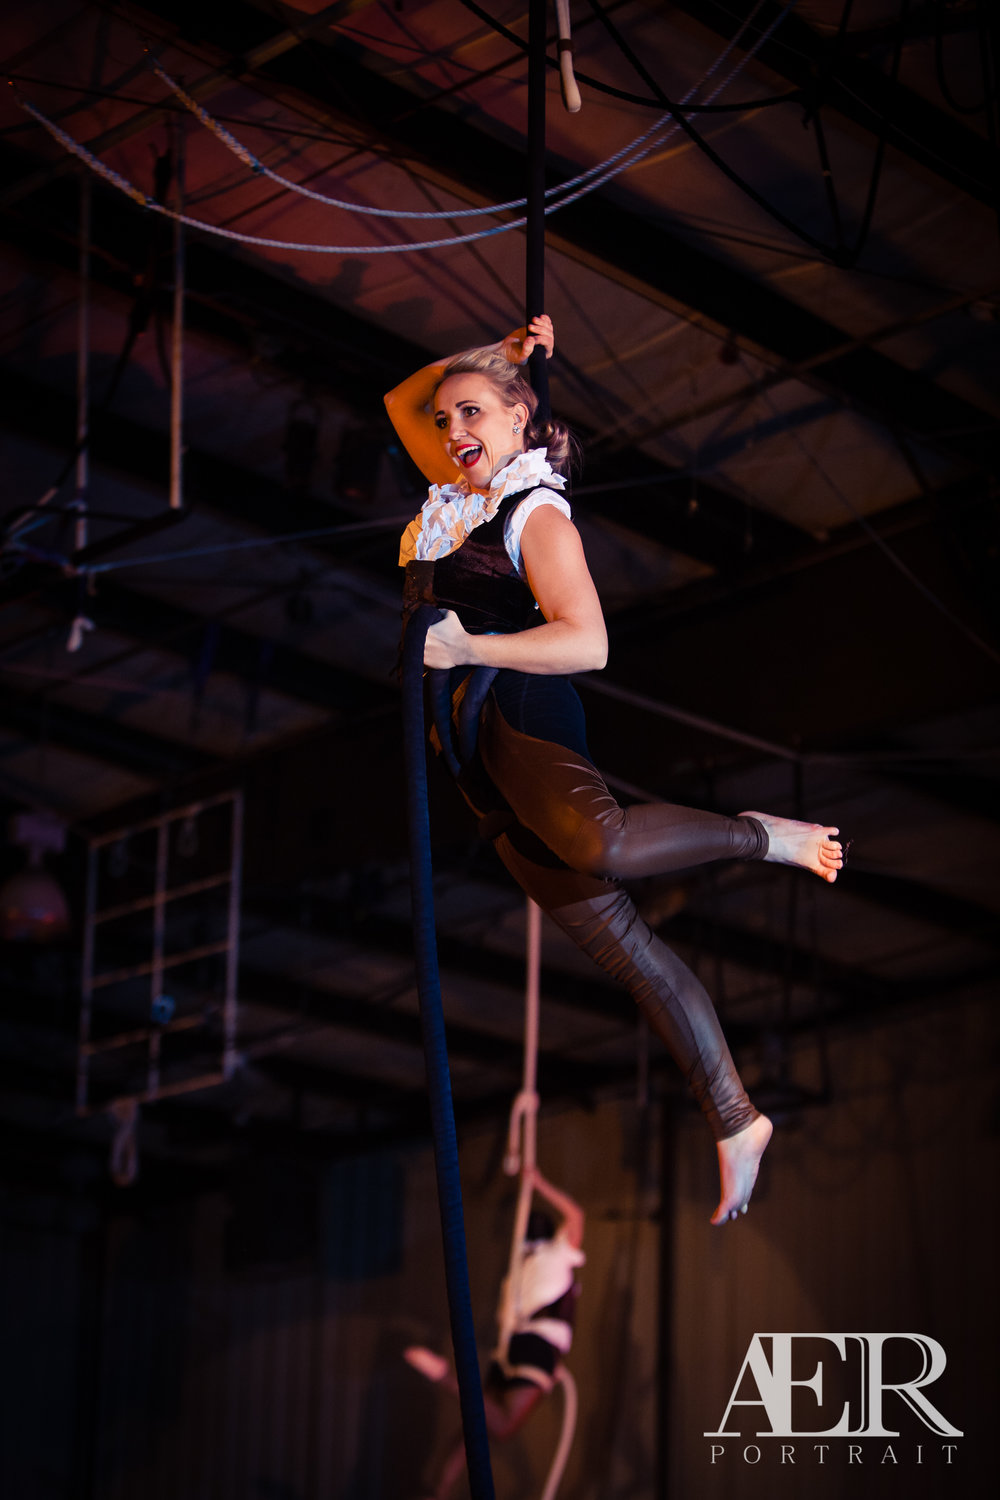 Louisville Performing Arts Photography - Turners Circus - AER Portrait 26